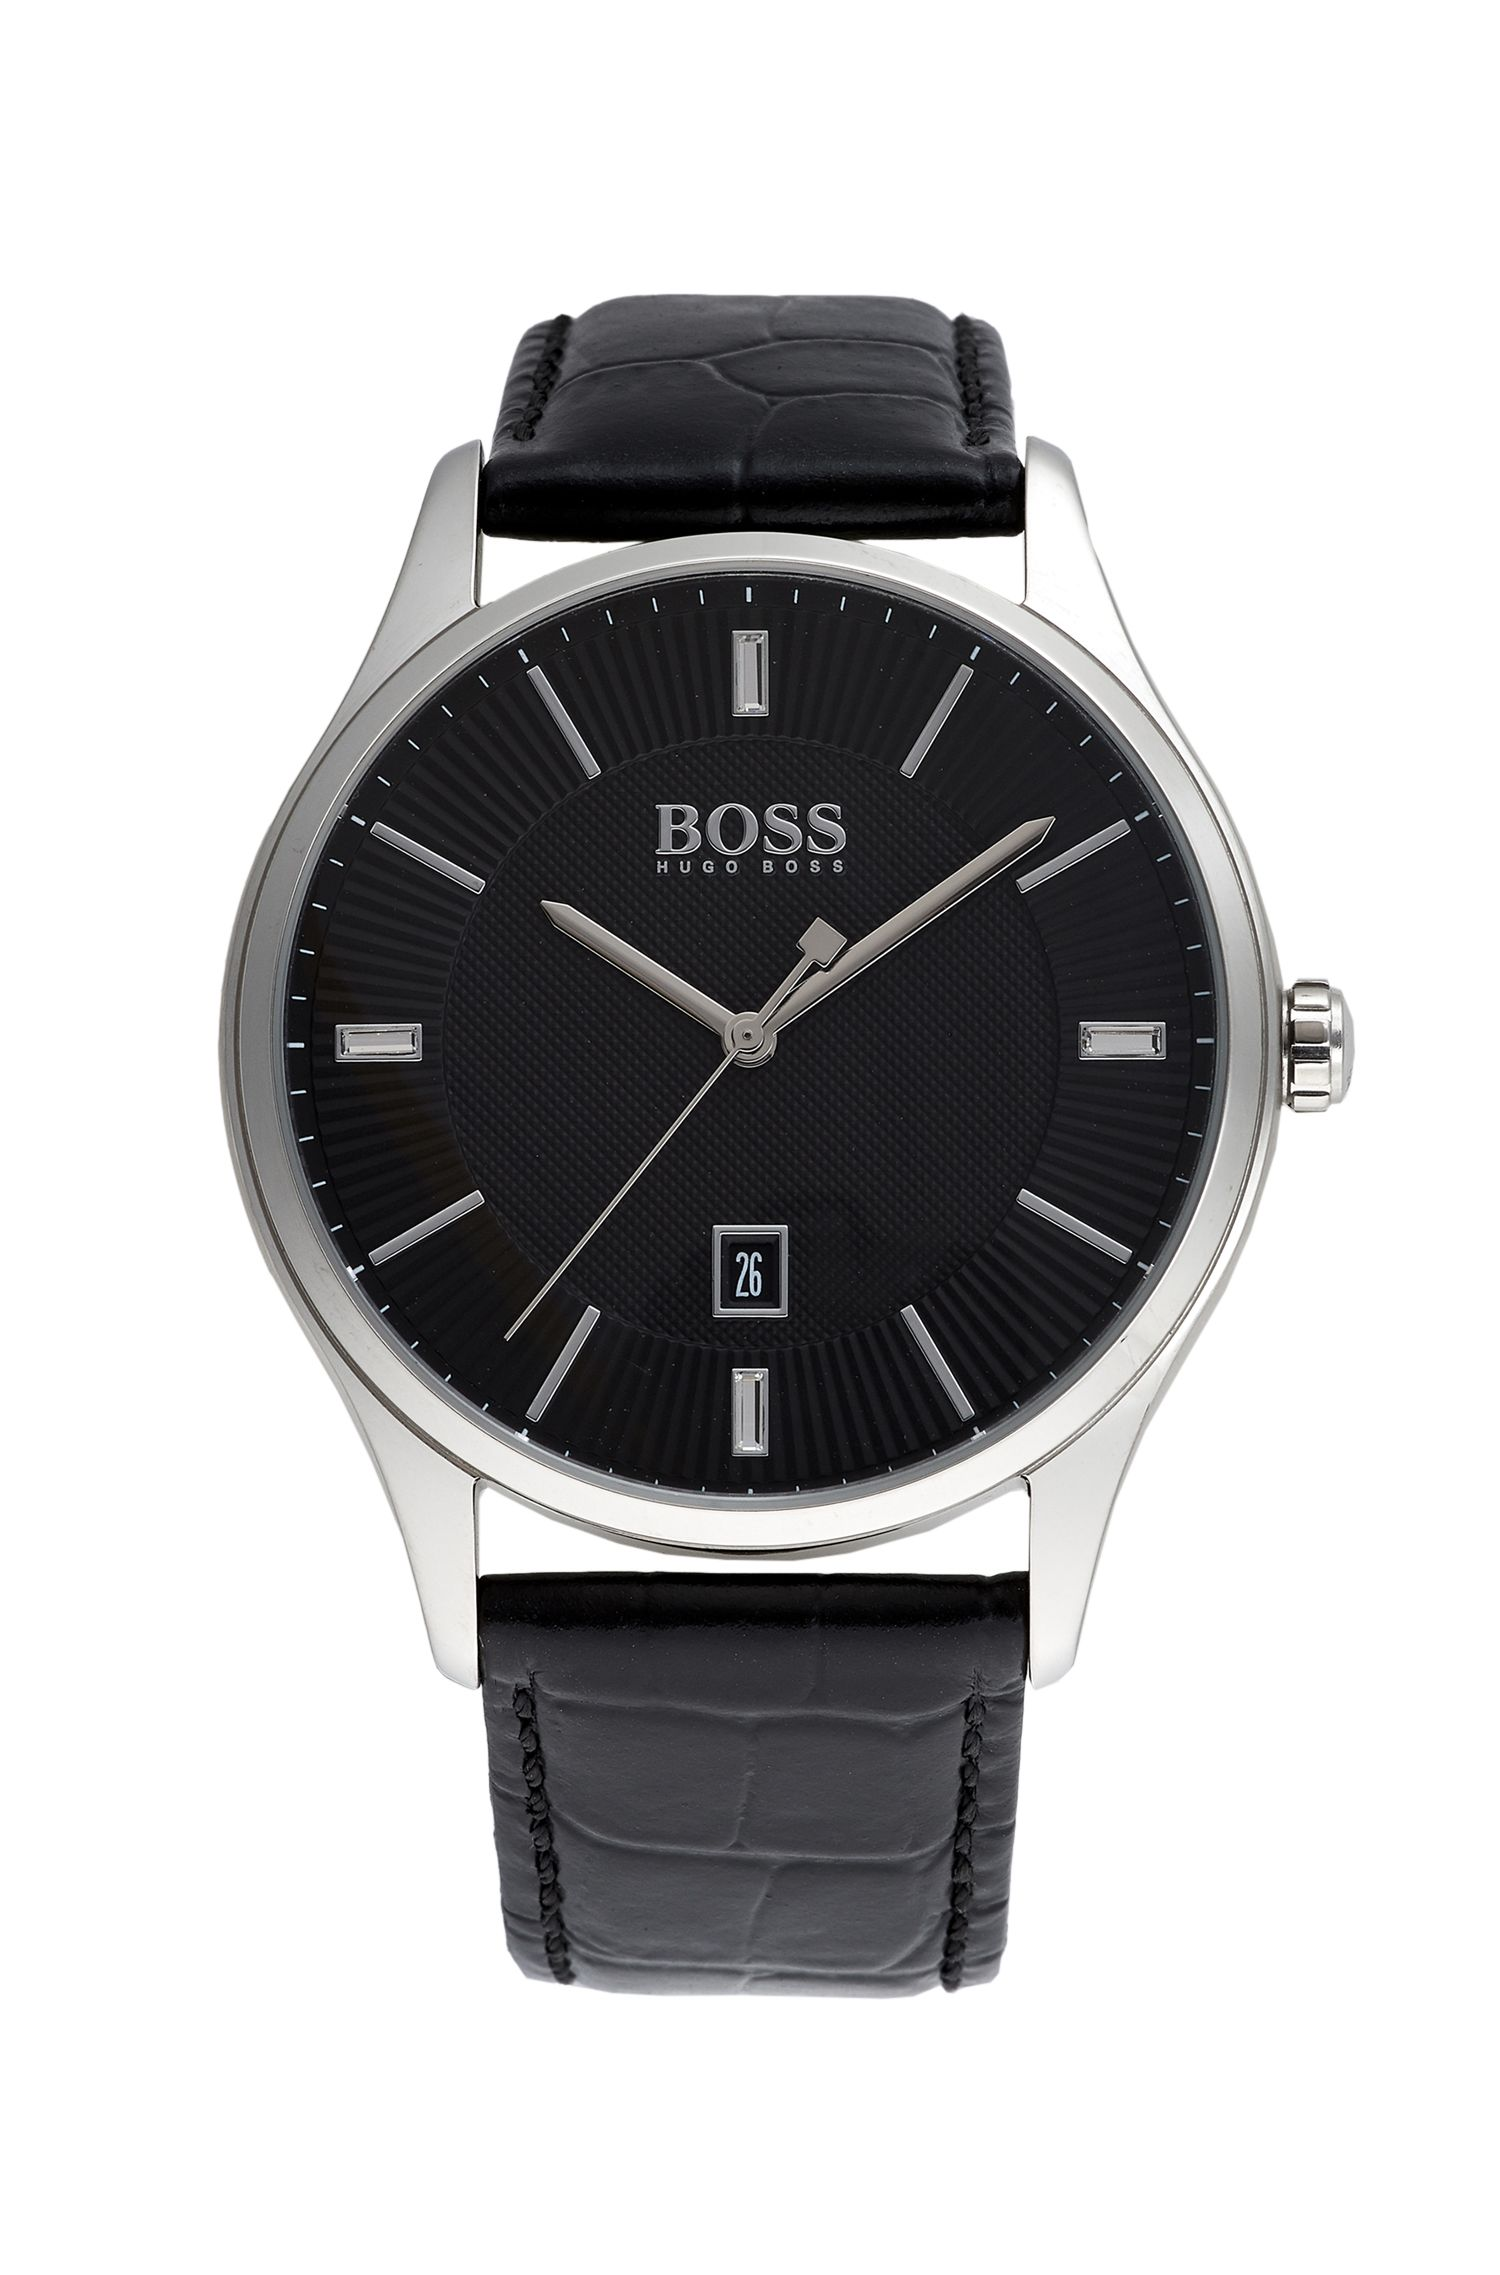 Govenor Casual Sport, Leather Strap Watch | 1513520